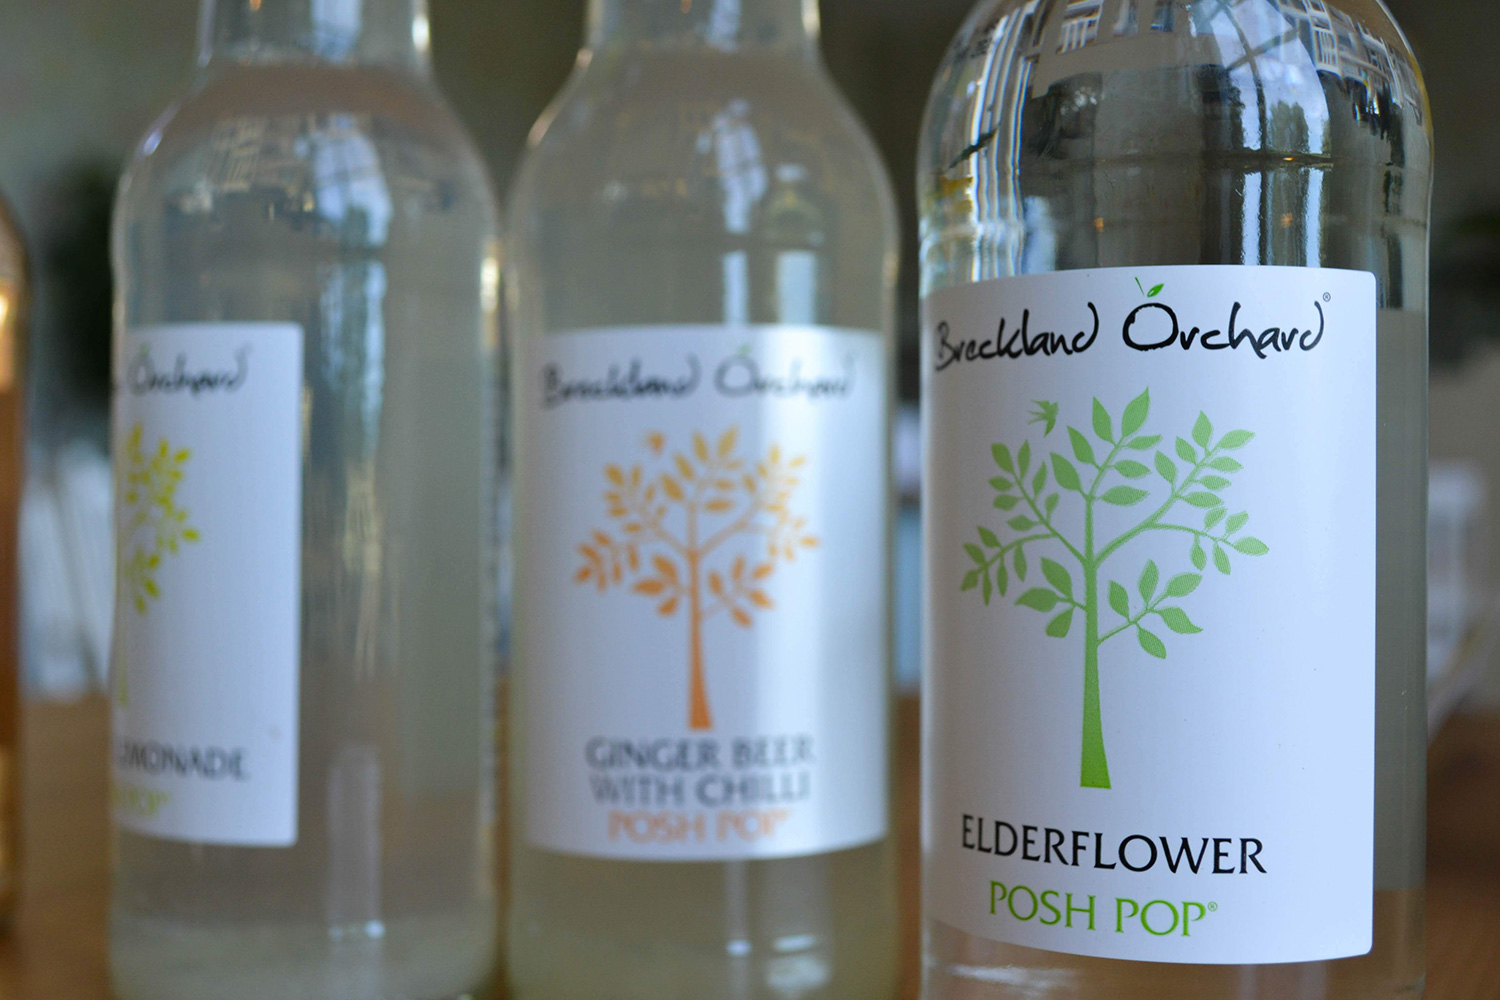 Soft drinks by Breckland Orchard.